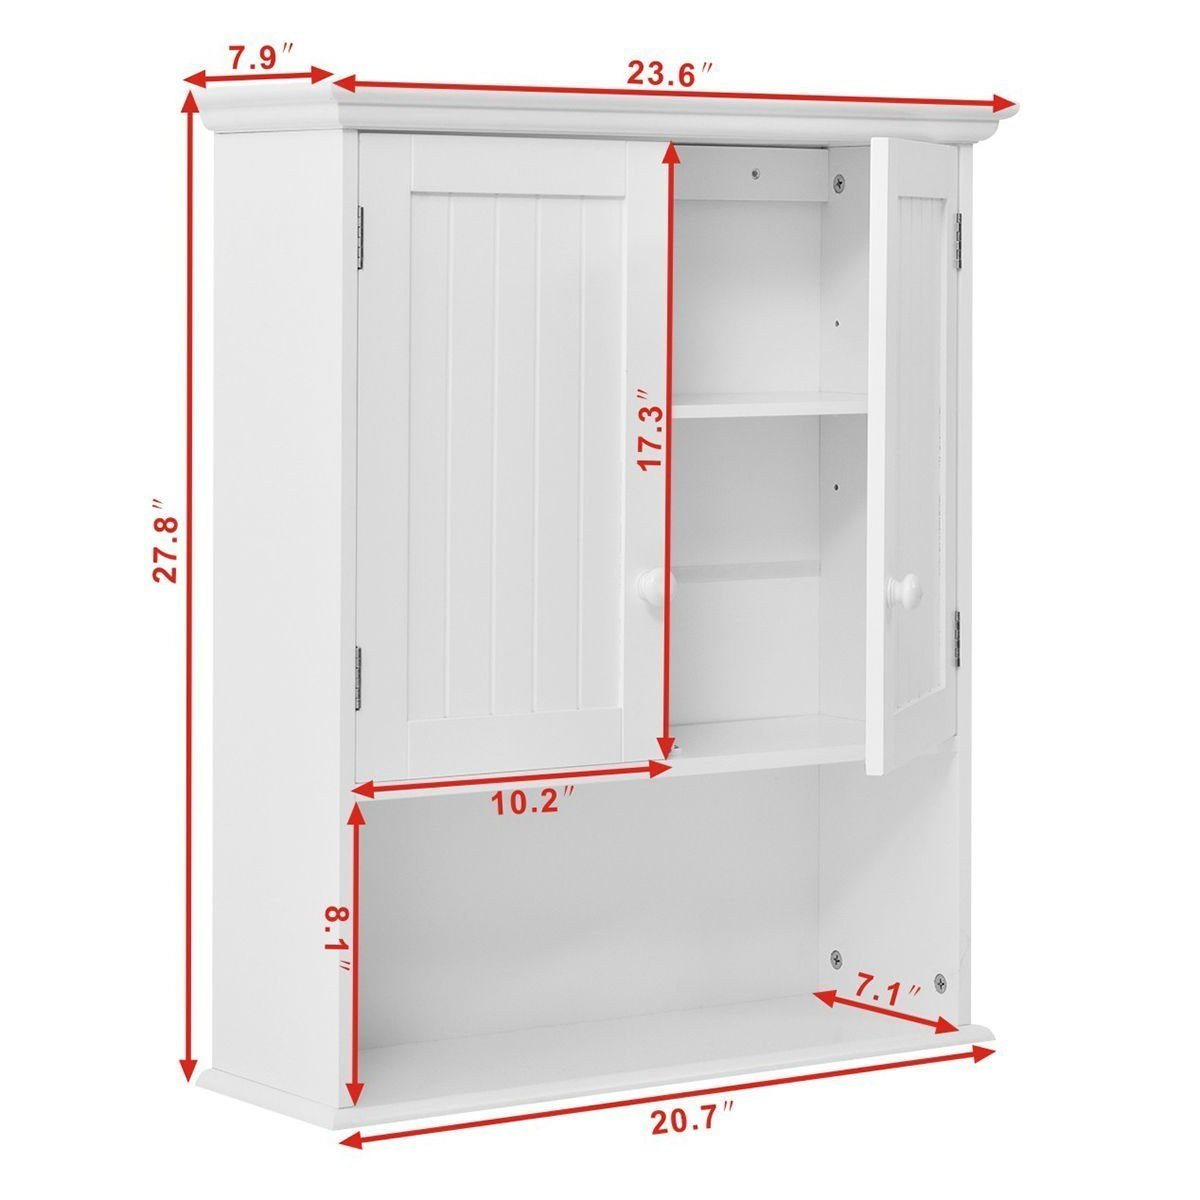 Home gentleshower bathroom wall cabinet wood medicine cabinet multipurpose home kitchen medicine storage organizer with 2 doors and 1 storage shelf white